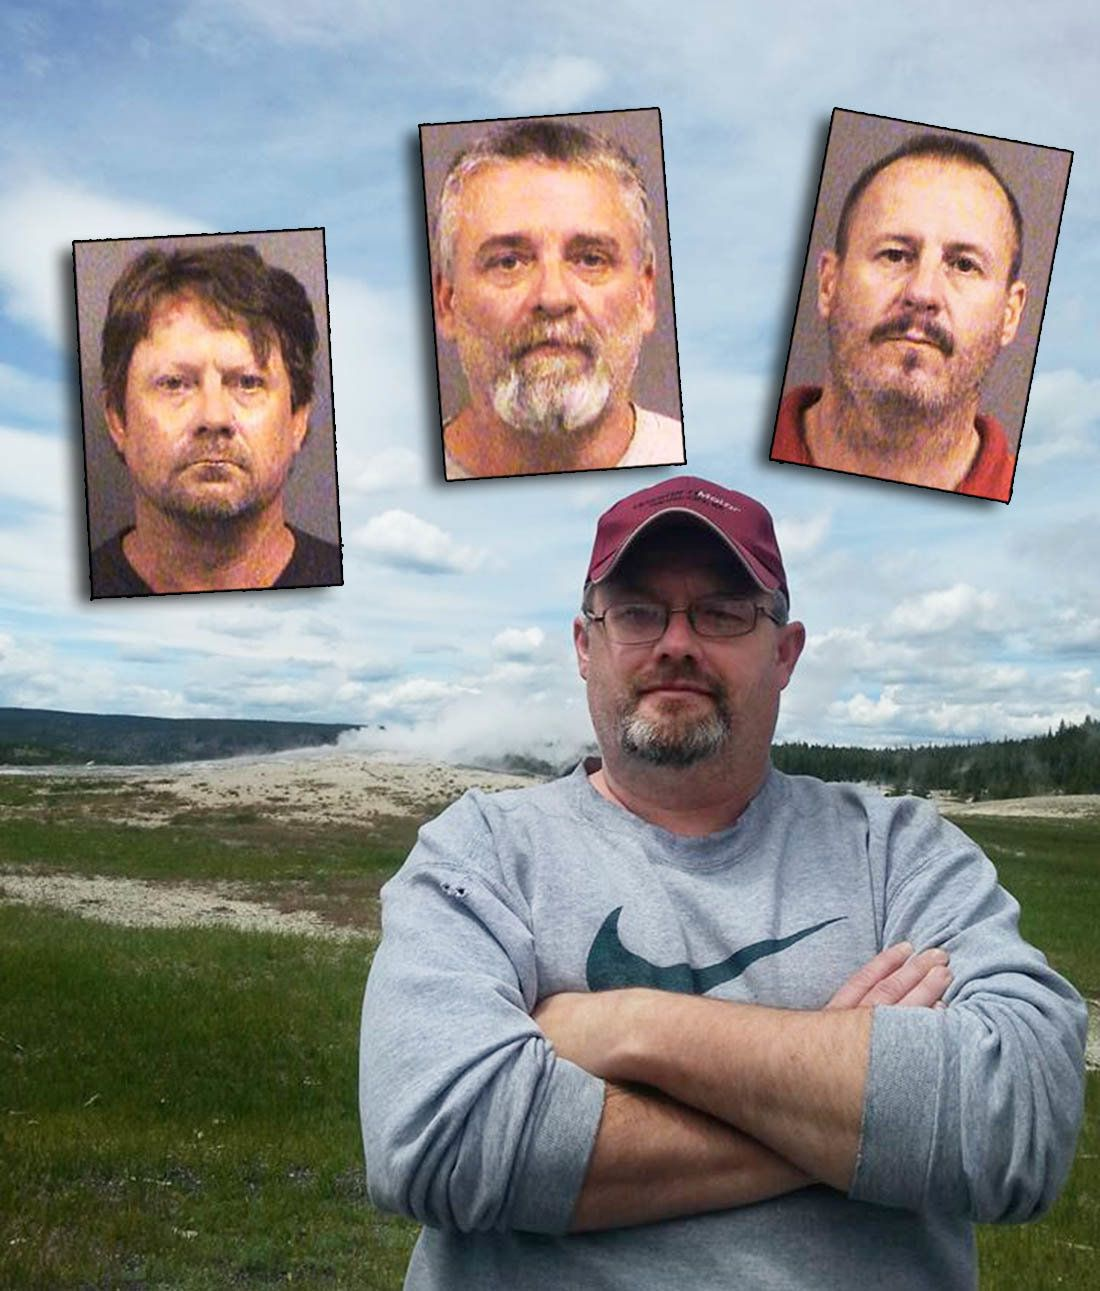 Without Dan Day, there would have been no case against the men who plotted to bomb Somali Muslim immigrants in Kansas.